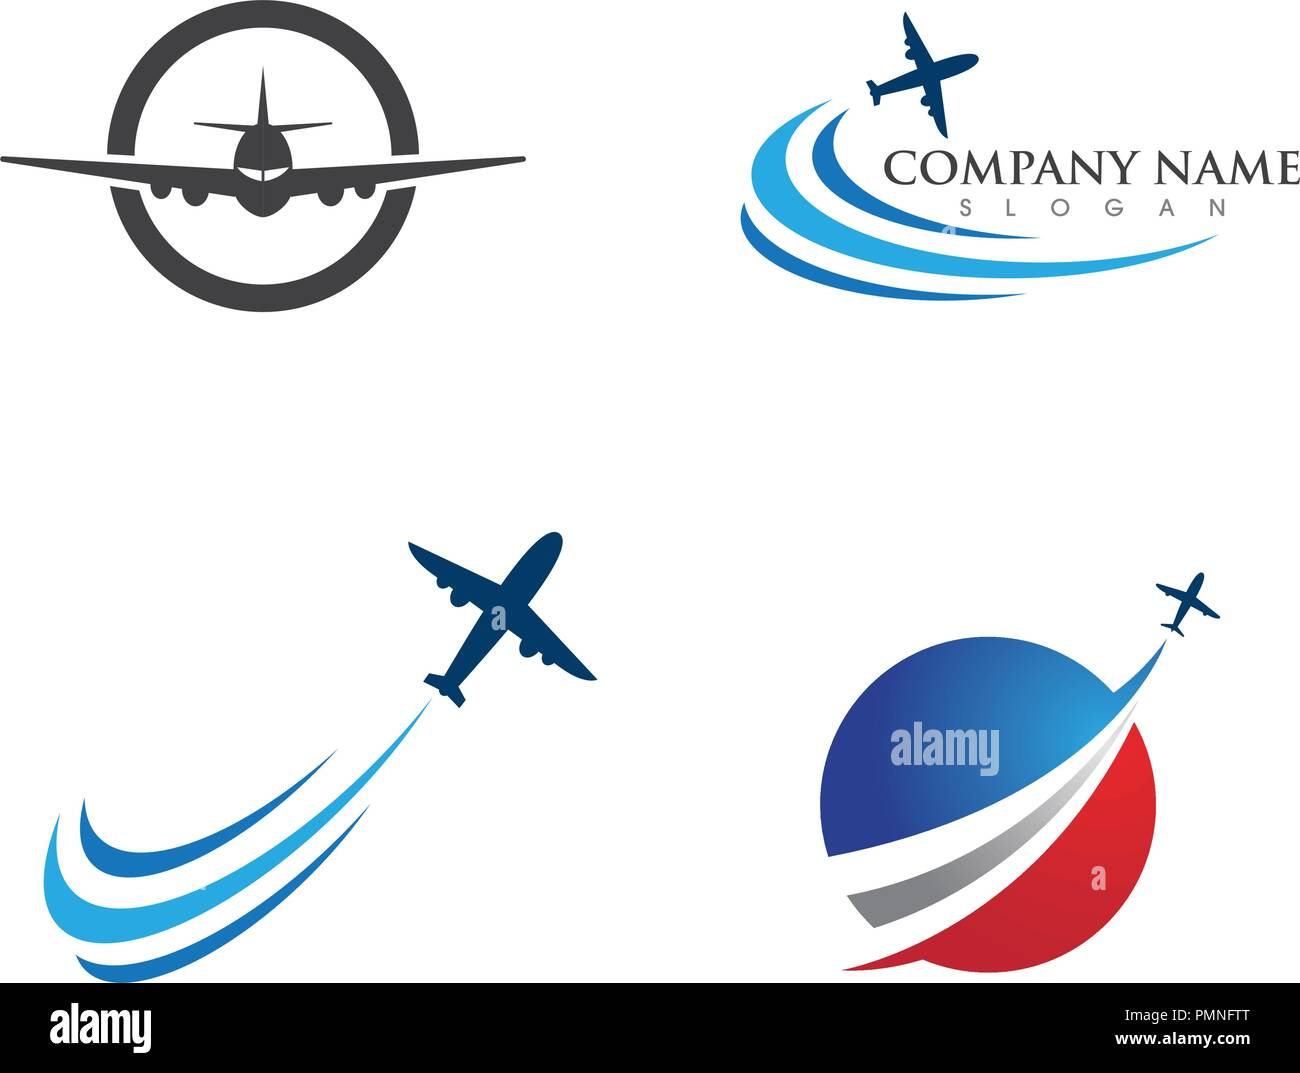 With The Aircraft Cut Out Stock Images Pictures Page 2 Alamy